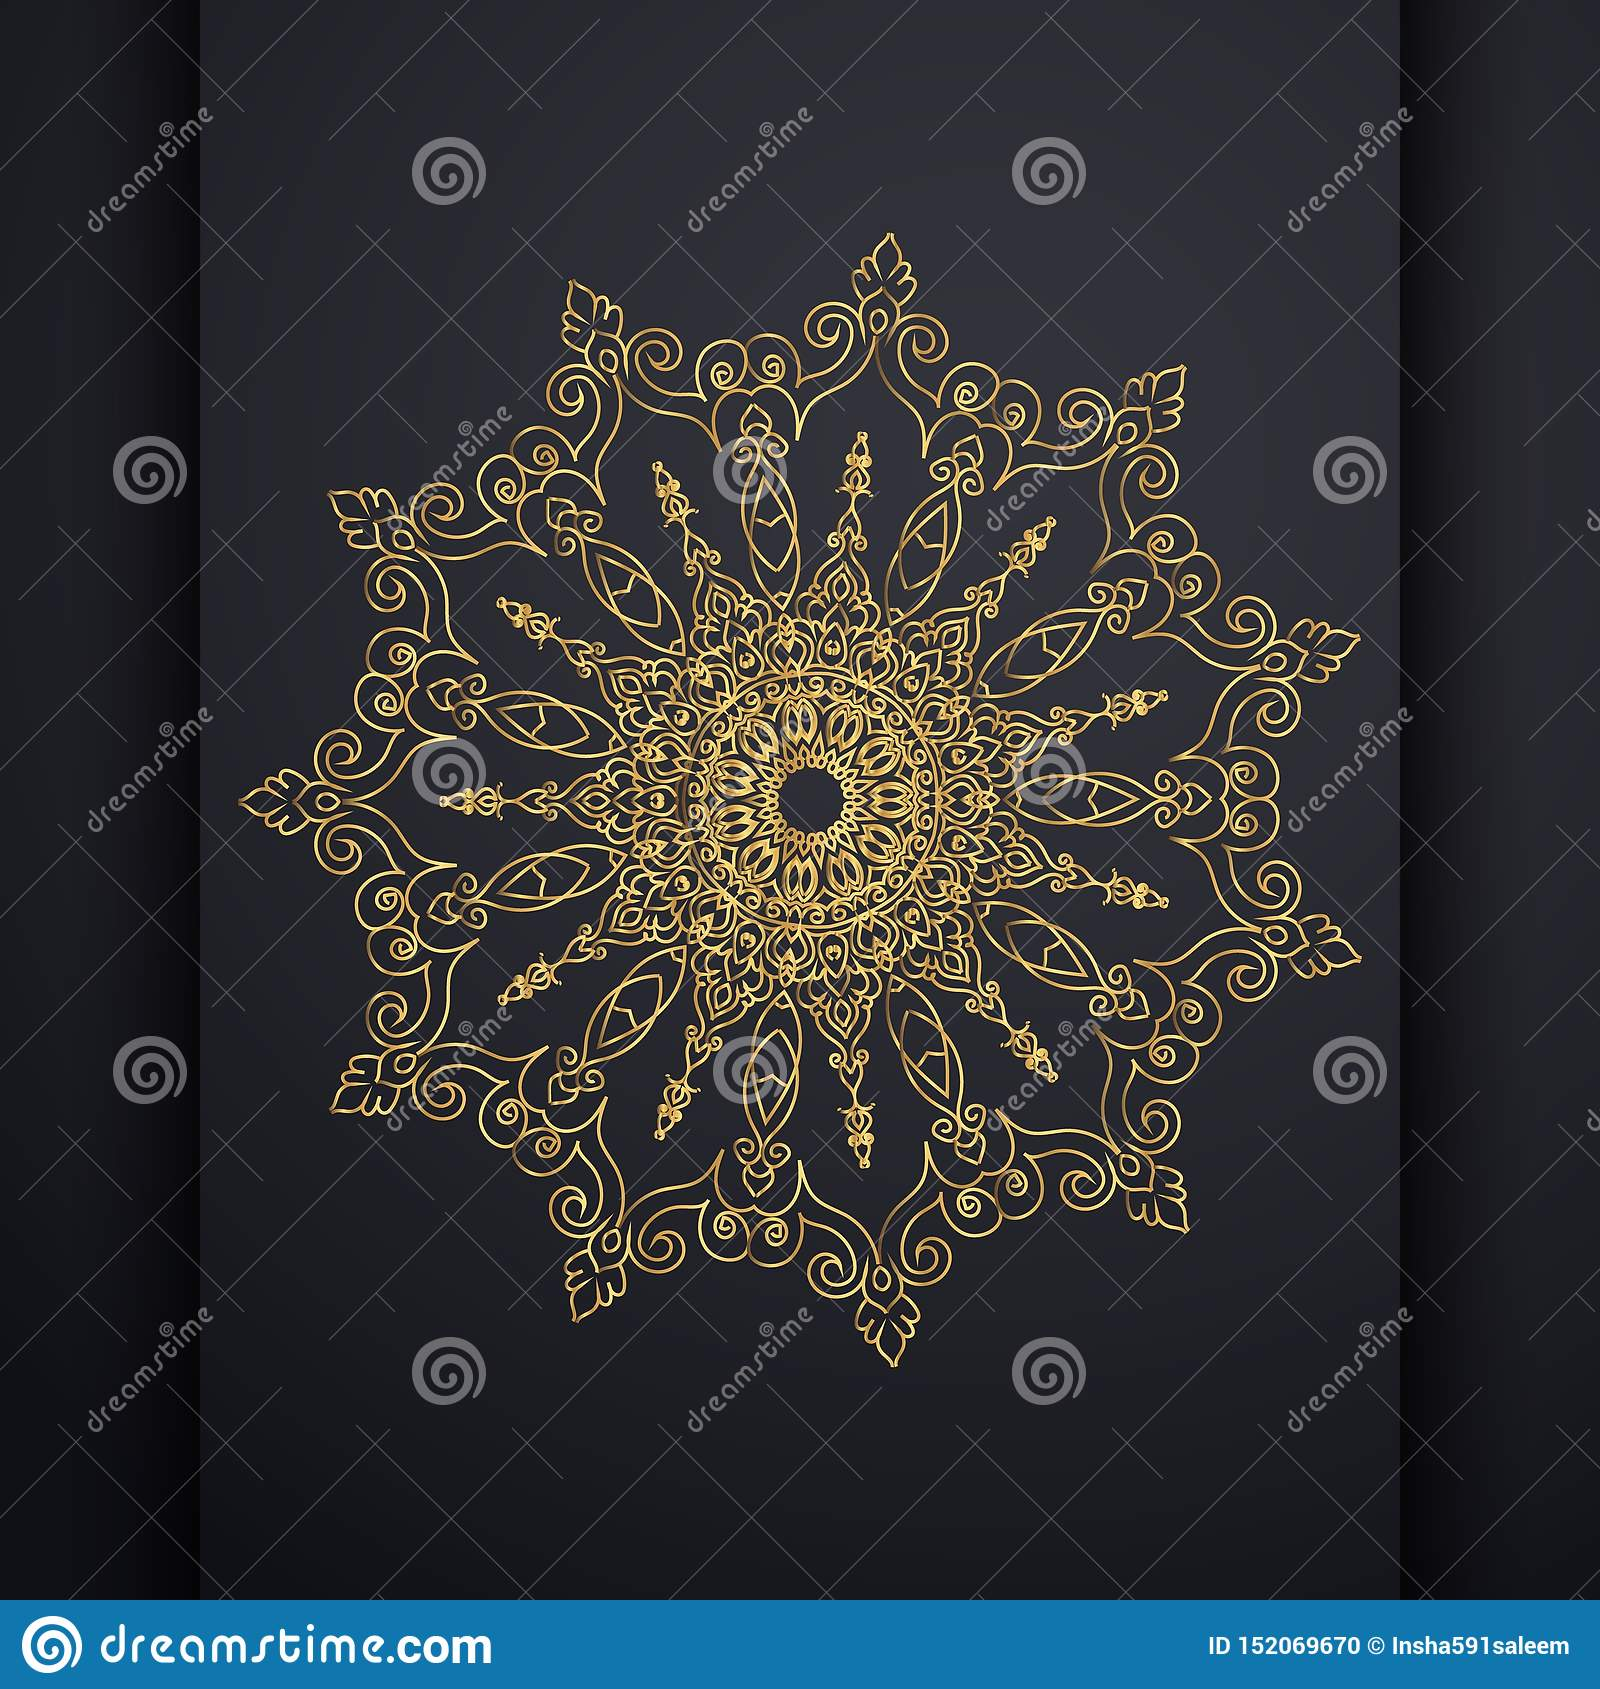 Islamic vertical banners with arabesque mandala for greeting card, poster and voucher.